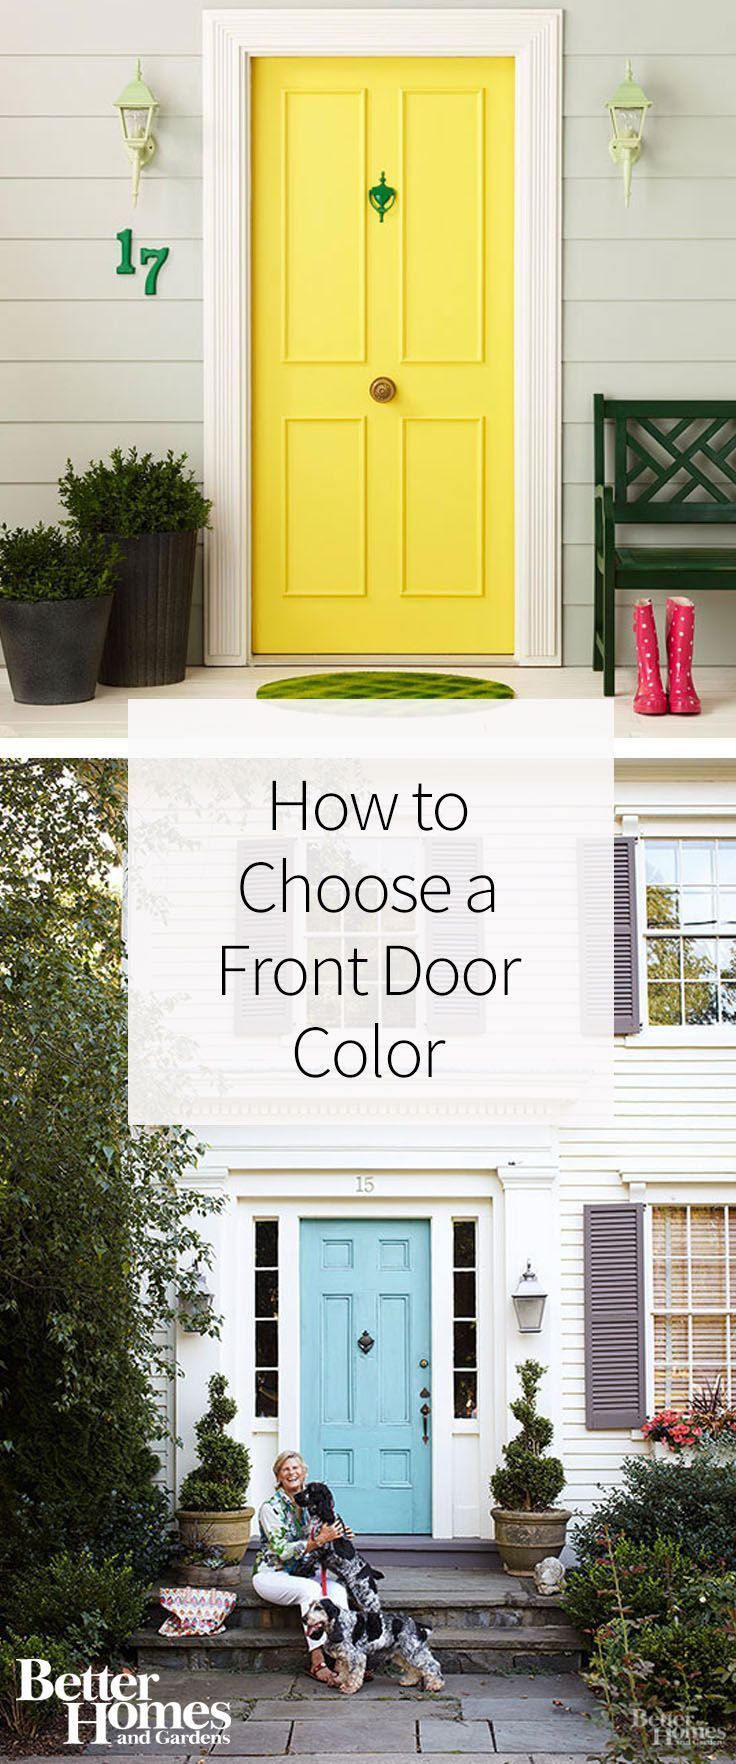 185 best Lovely Porch Ideas images on Pinterest   Balconies, Front ...